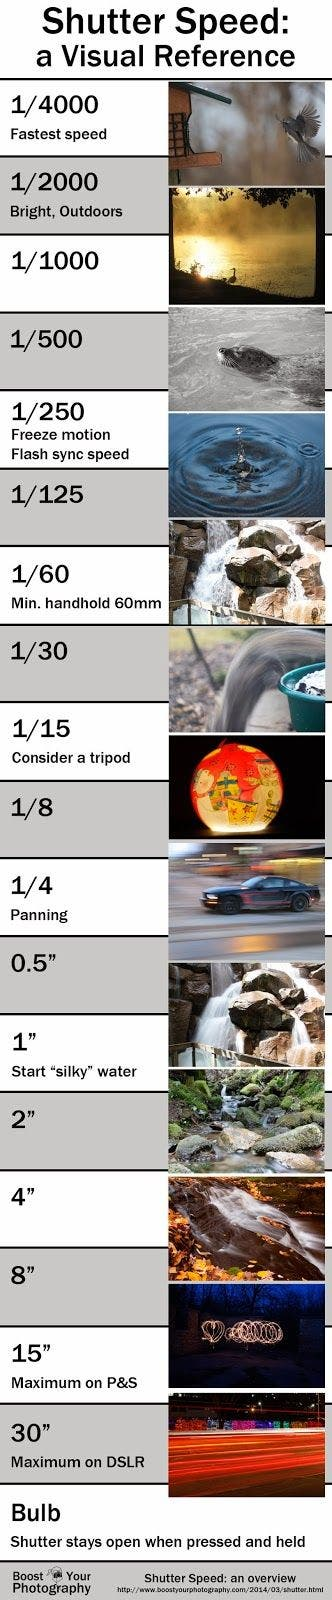 Photography Cheat Sheet: Shutter Speed Visual Reference